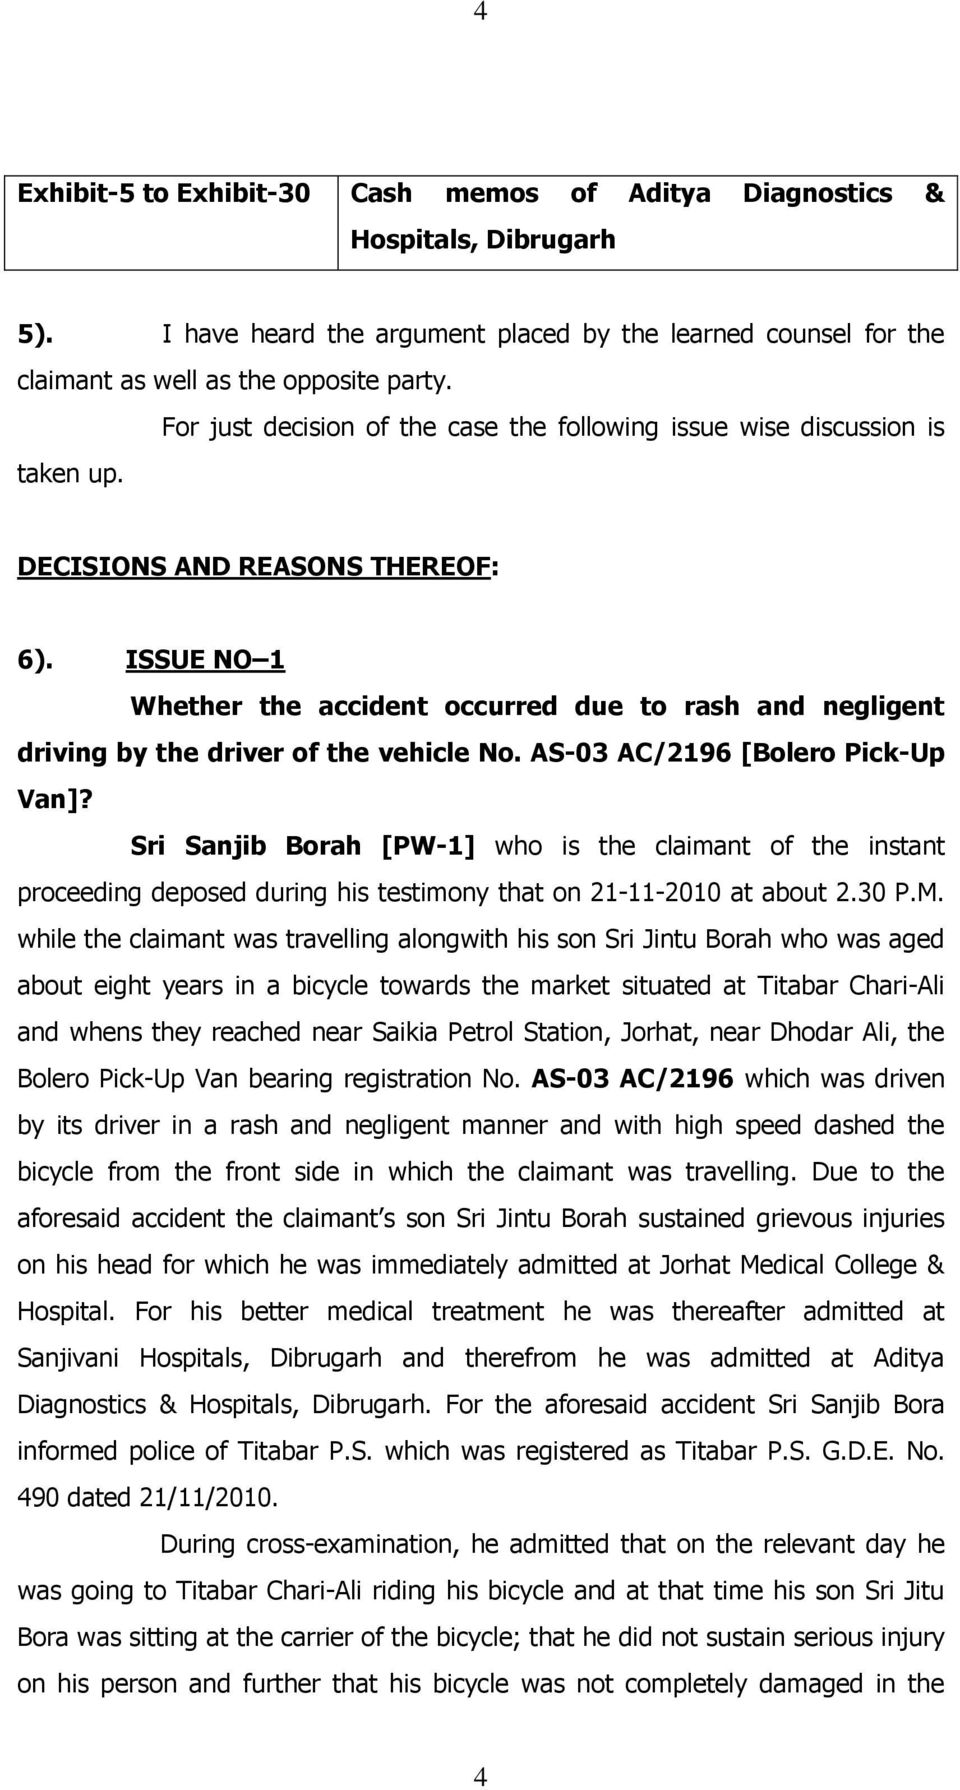 ISSUE NO 1 Whether the accident occurred due to rash and negligent driving by the driver of the vehicle No. AS-03 AC/2196 [Bolero Pick-Up Van]?